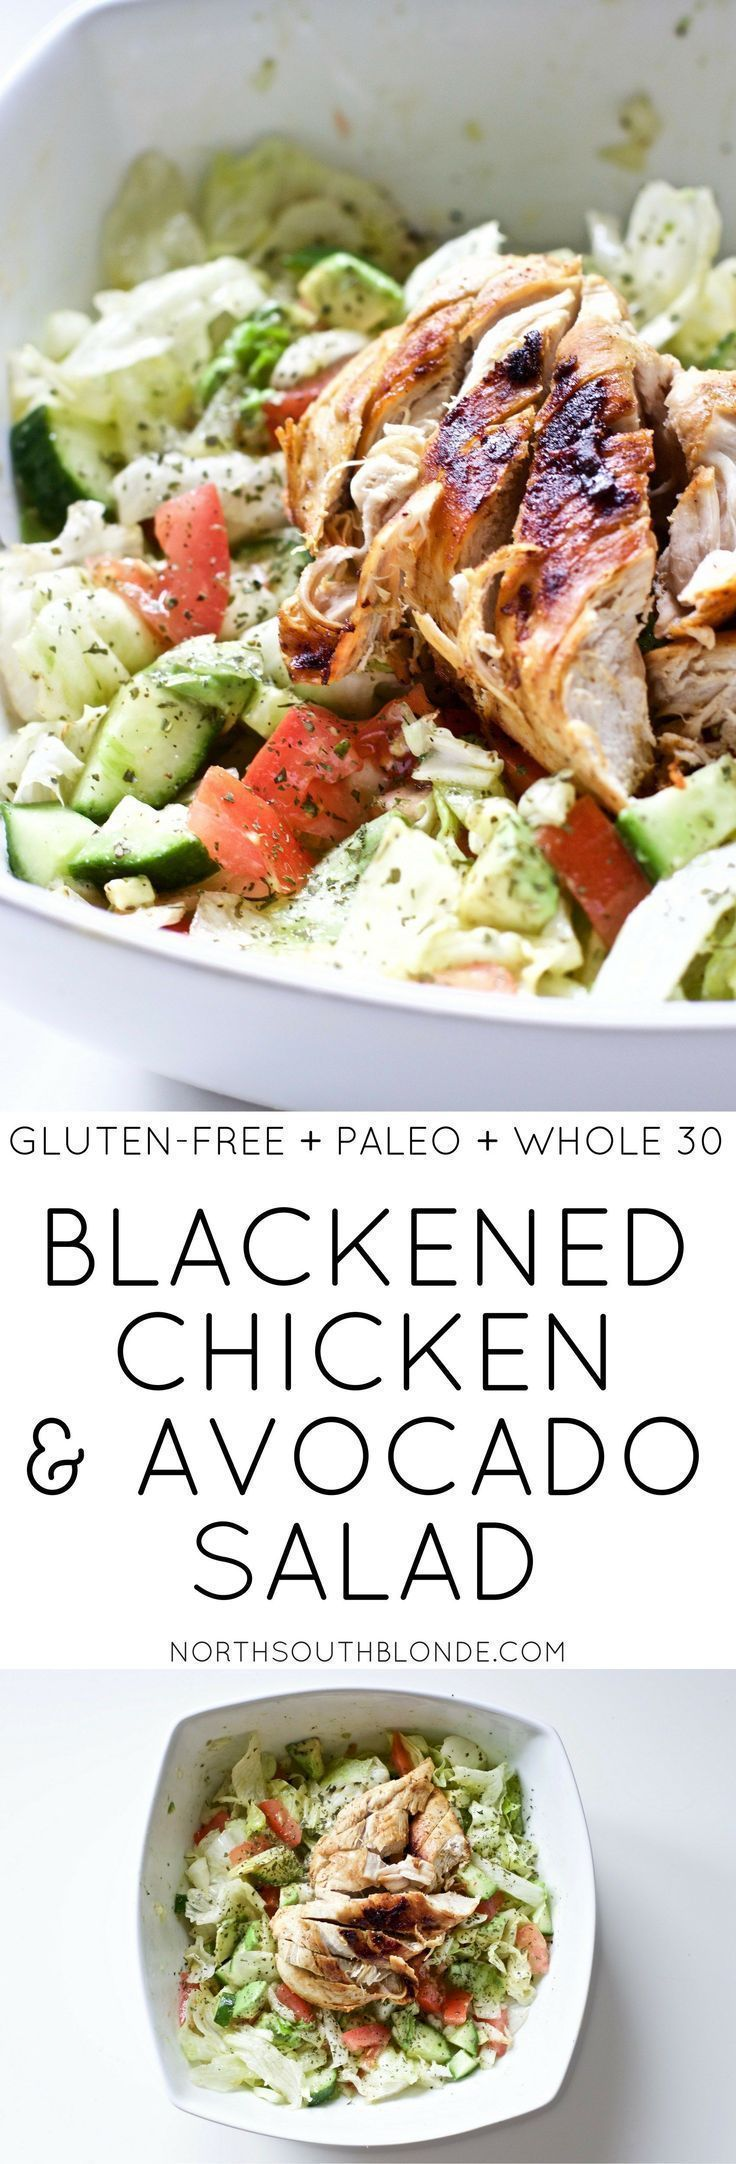 Blackened Chicken and Avocado Salad (Gluten-Free, Paleo, Whole 30) - #Avocado #Blackened #Chicken #GlutenFree #Paleo #Salad #blackenedchicken Blackened Chicken and Avocado Salad (Gluten-Free, Paleo, Whole 30) - #Avocado #Blackened #Chicken #GlutenFree #Paleo #Salad #blackenedchicken Blackened Chicken and Avocado Salad (Gluten-Free, Paleo, Whole 30) - #Avocado #Blackened #Chicken #GlutenFree #Paleo #Salad #blackenedchicken Blackened Chicken and Avocado Salad (Gluten-Free, Paleo, Whole 30) - #Avoc #blackenedchicken